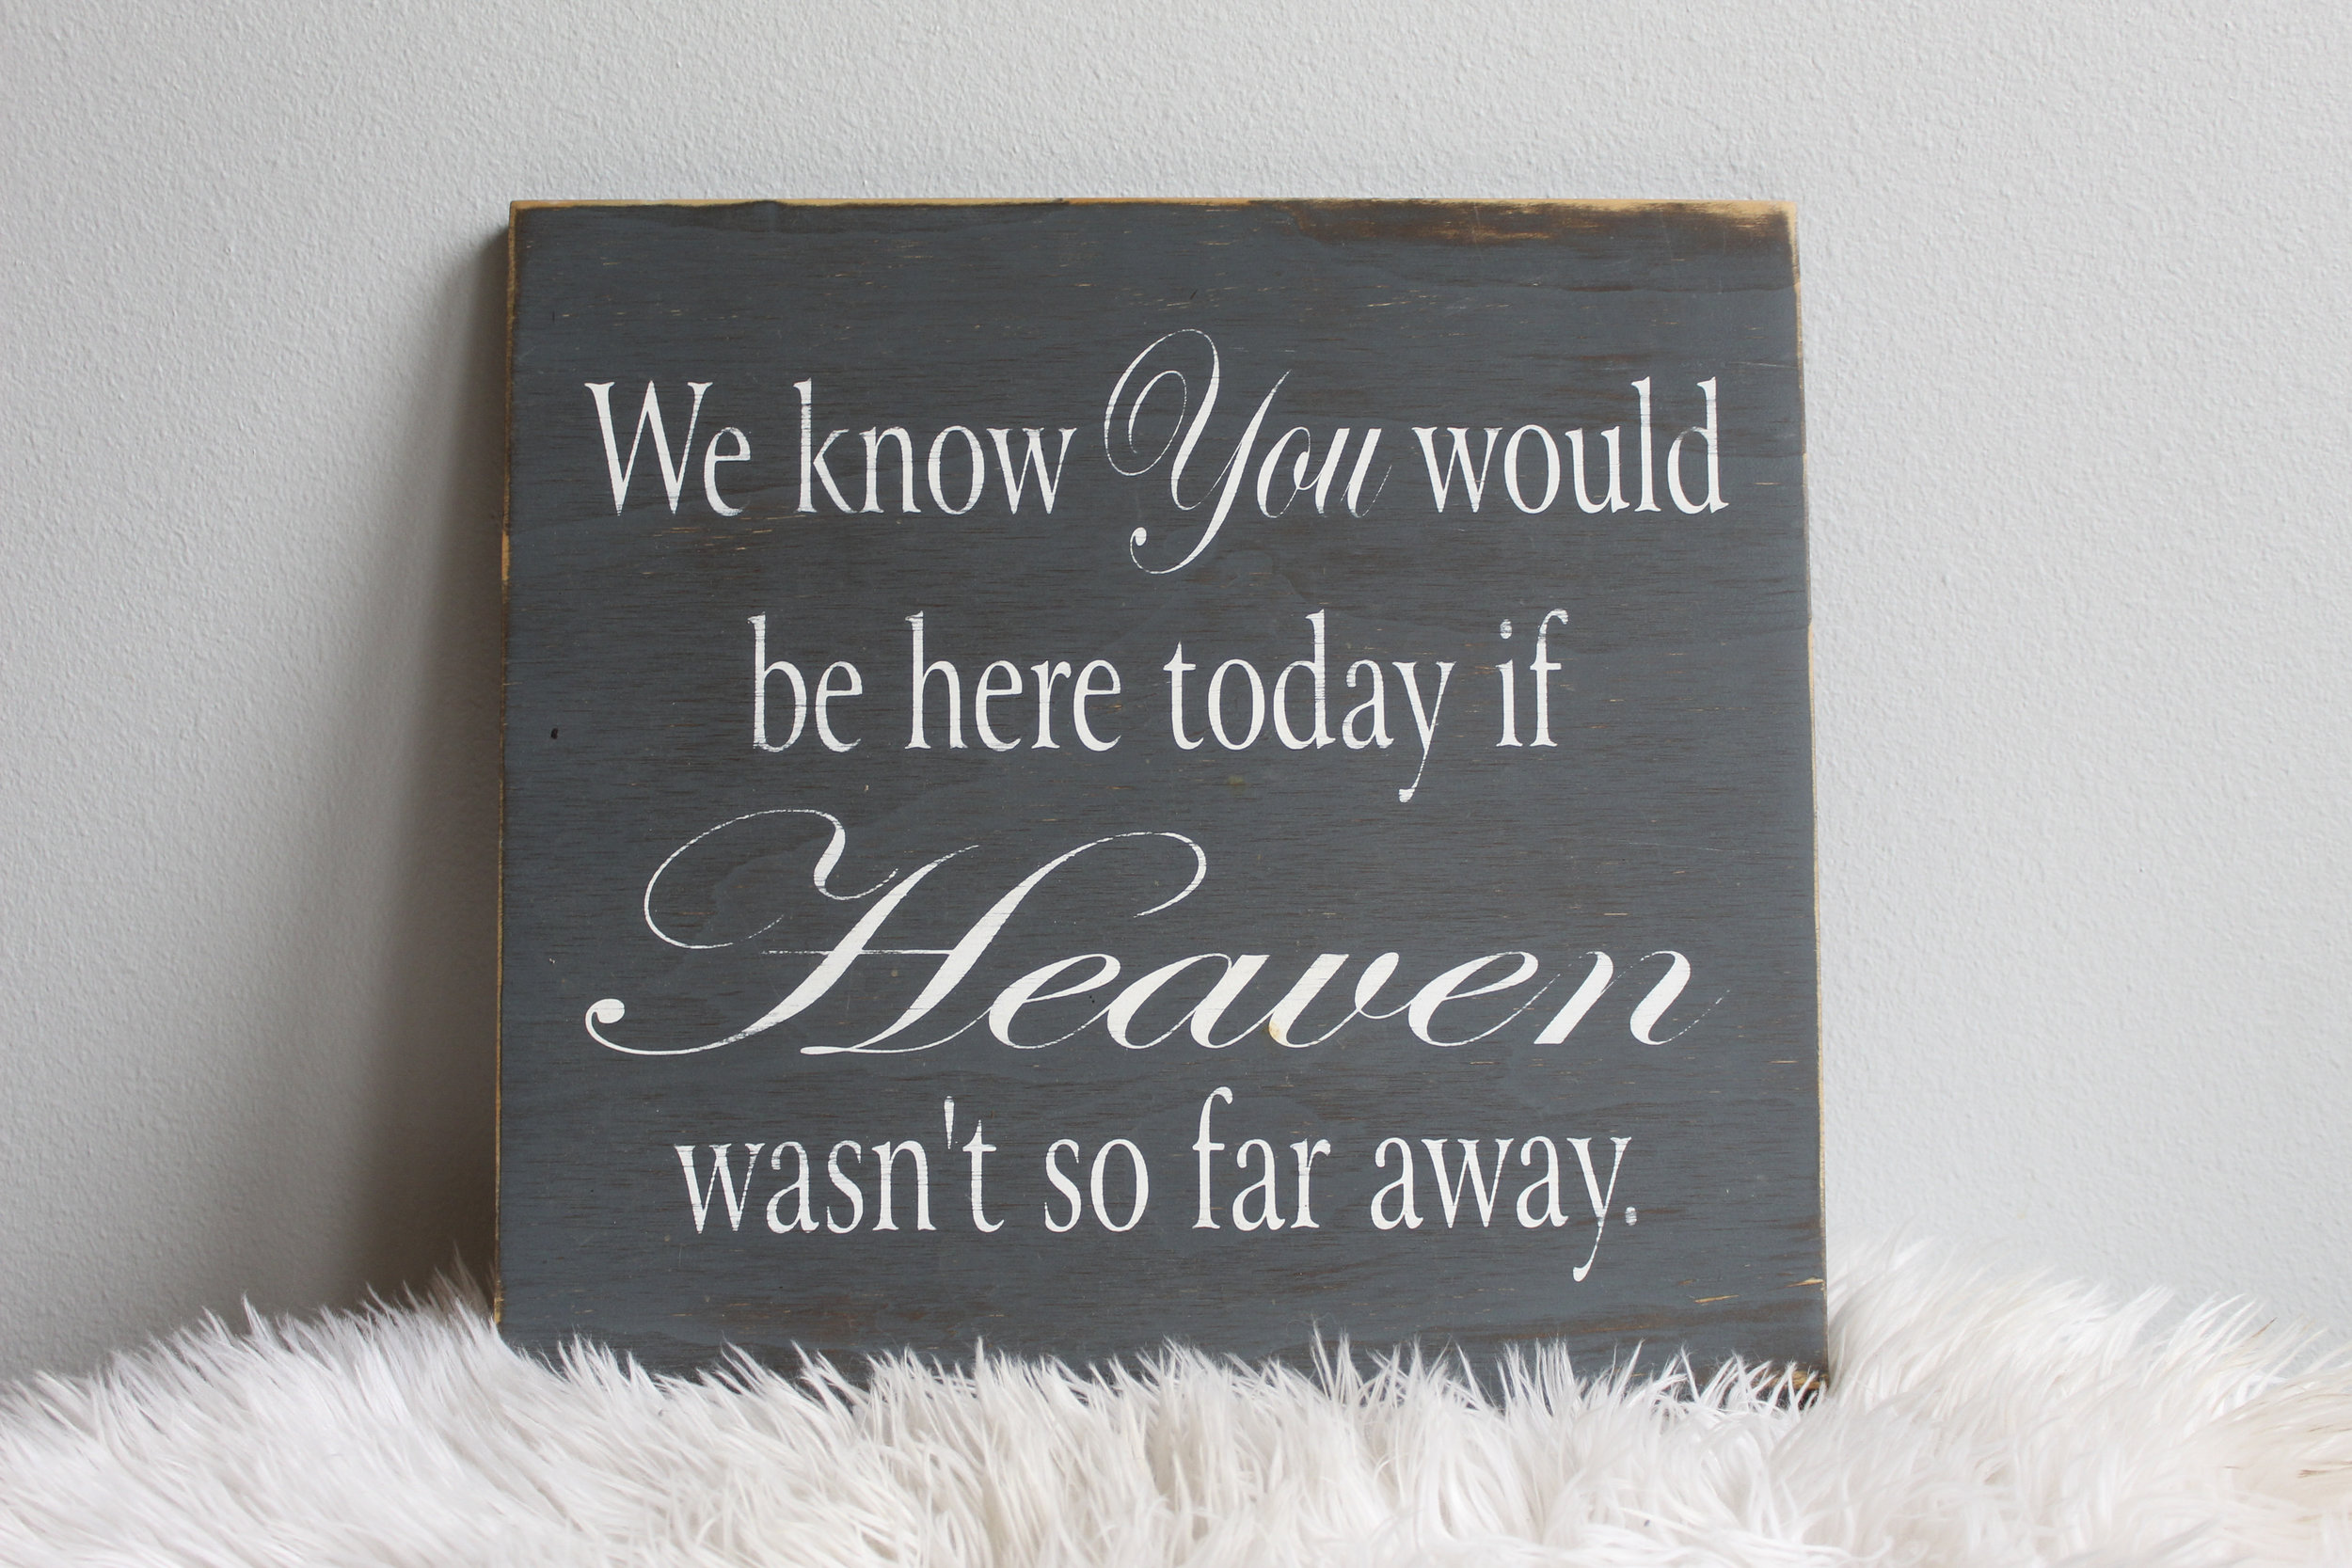 If Heaven Wasn't So Far Away Sign - $8.00